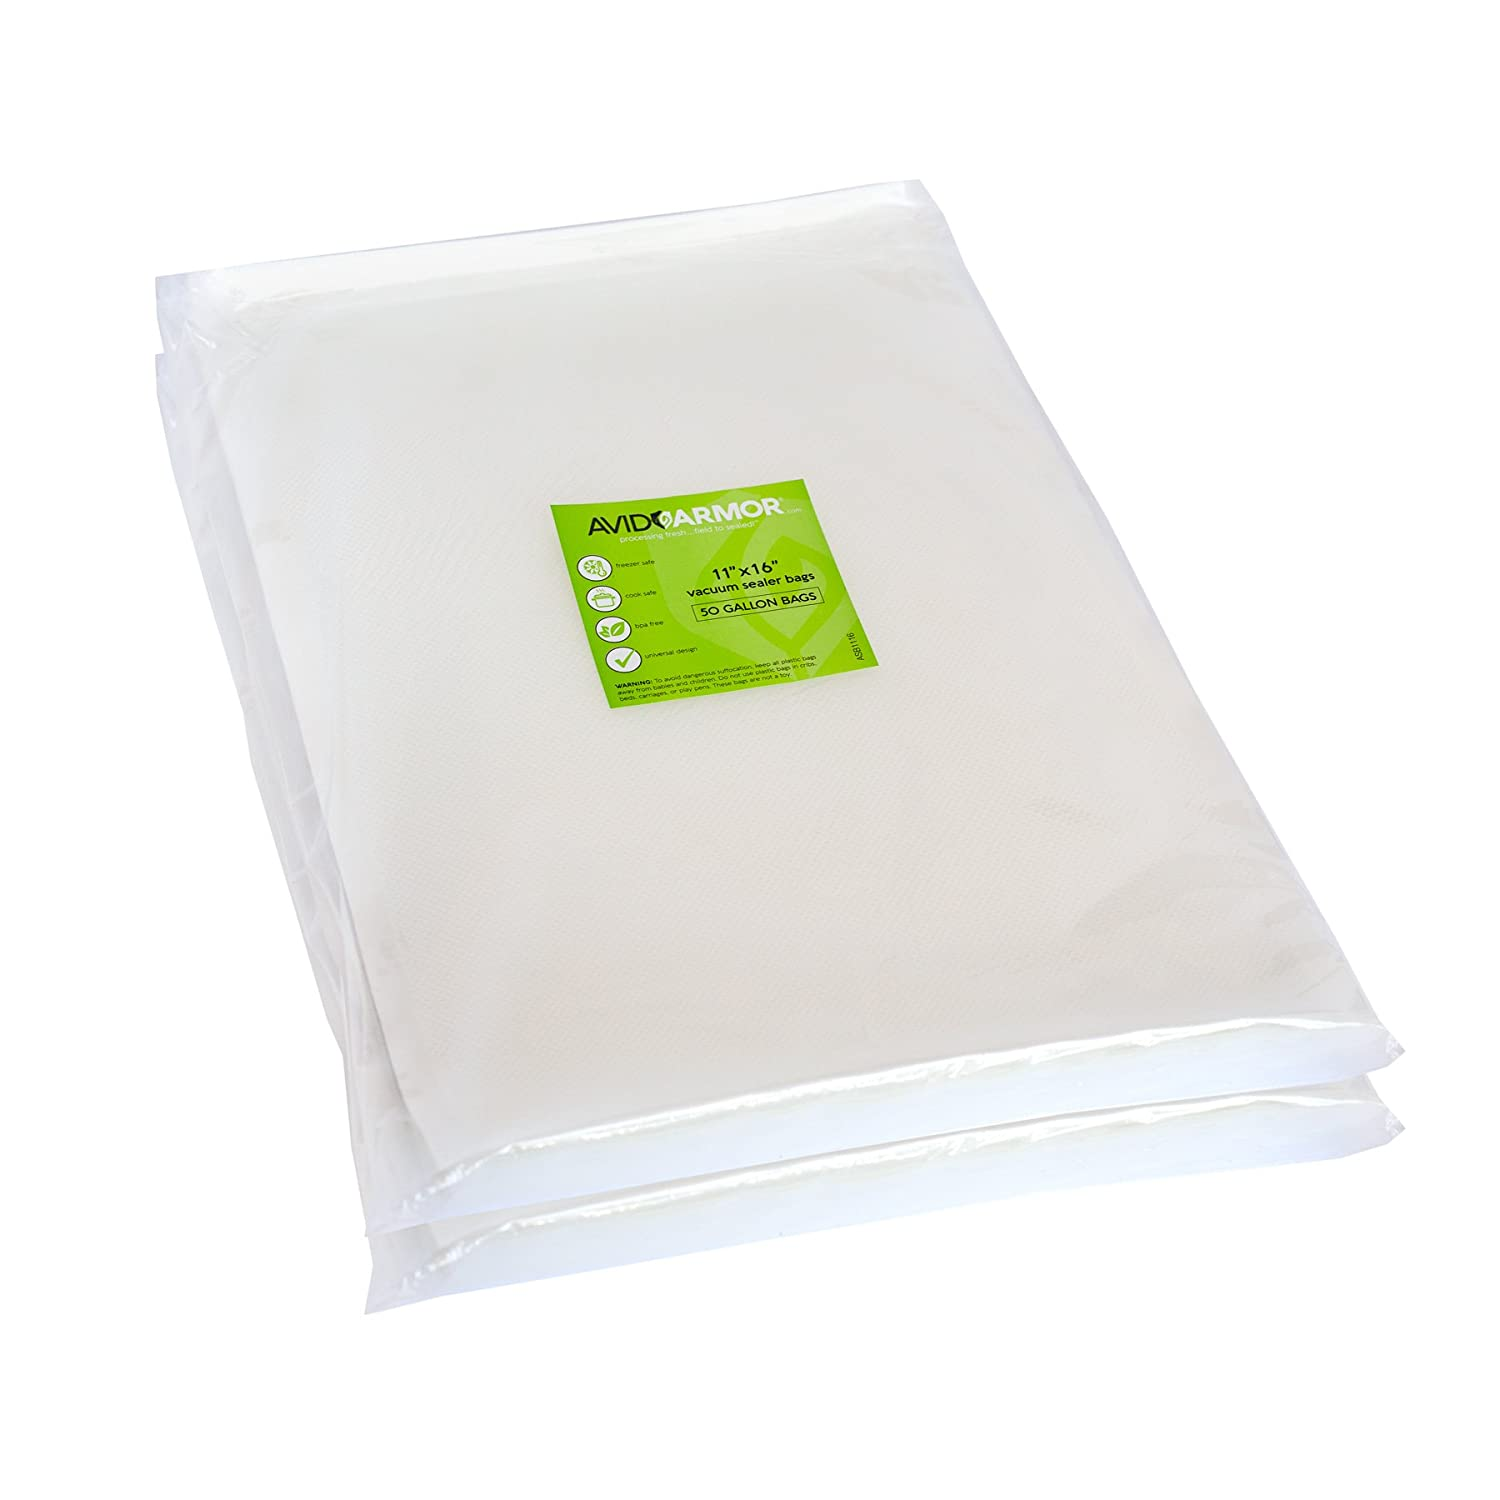 "100 Gallon Vacuum Sealer Storage Bags for Food Saver, Seal a Meal Vac Sealers, 11"" x 16"" Size, BPA Free, Heavy Duty Commercial Grade, Sous Vide Vaccume Safe, Universal Design Pre-Cut Bag Avid Armor"